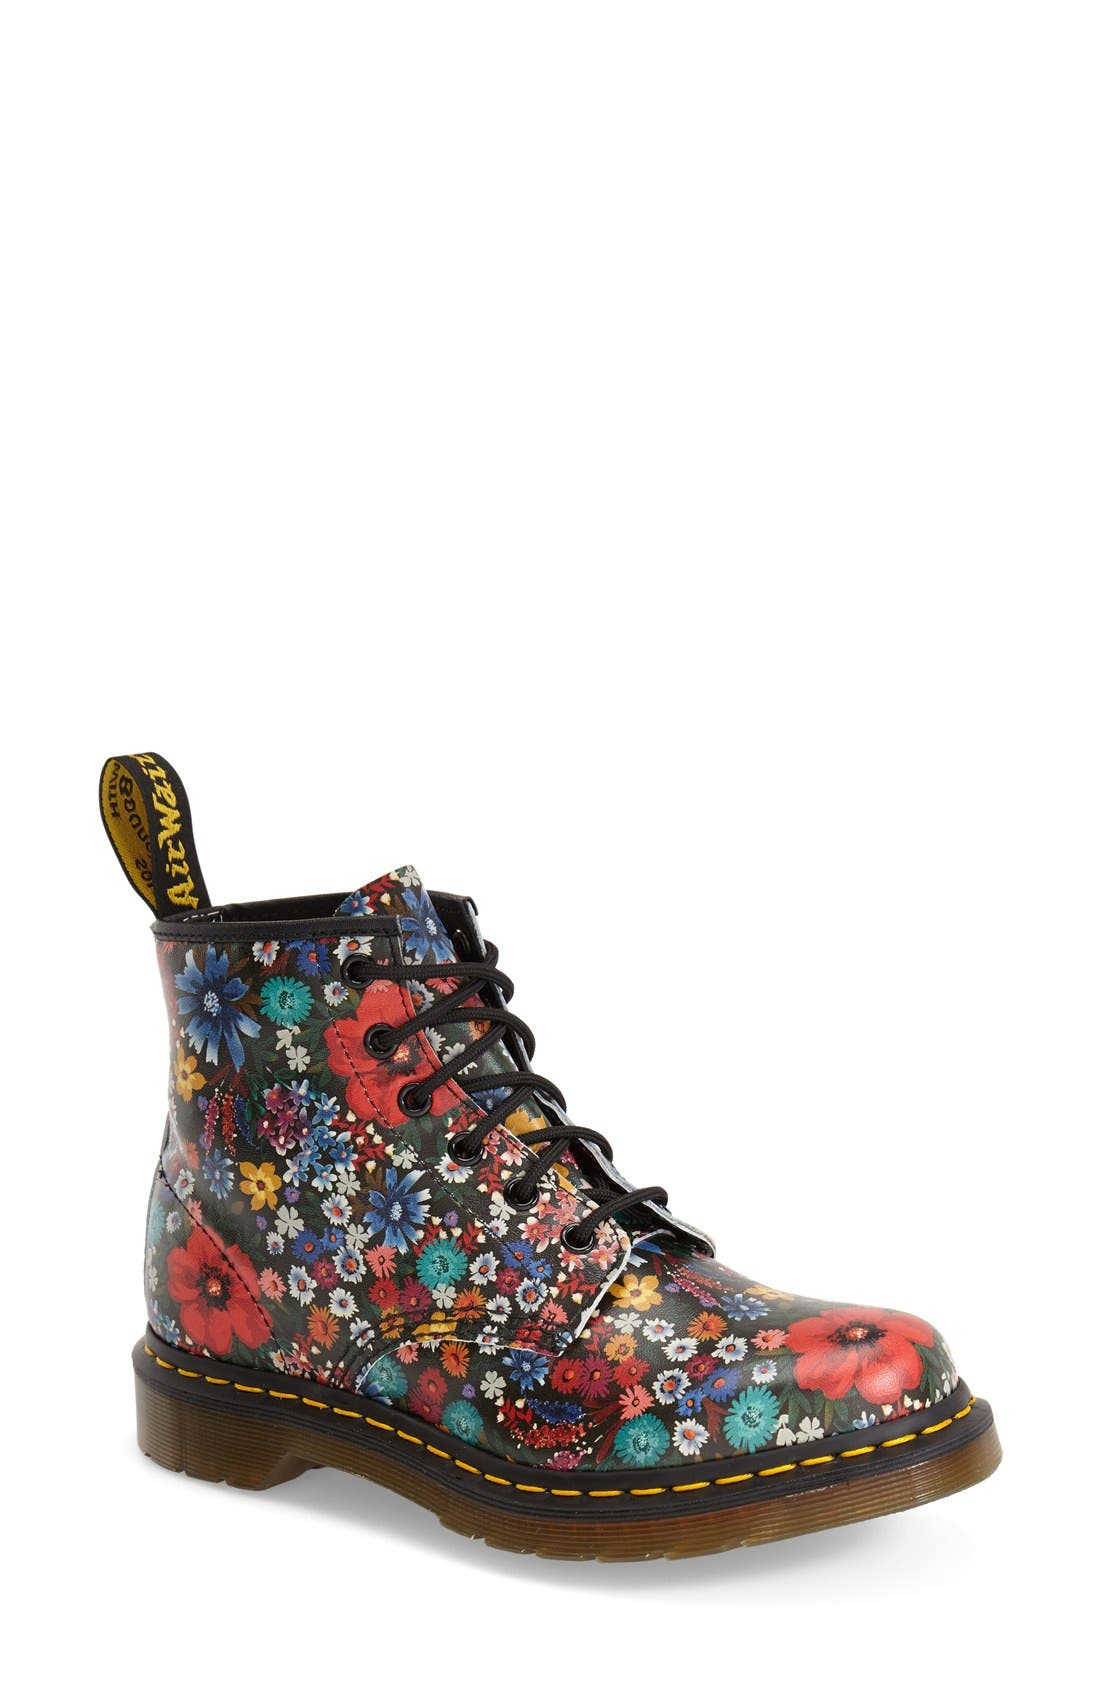 Main Image - Dr. Martens '101' Floral Print Leather Boot (Women)